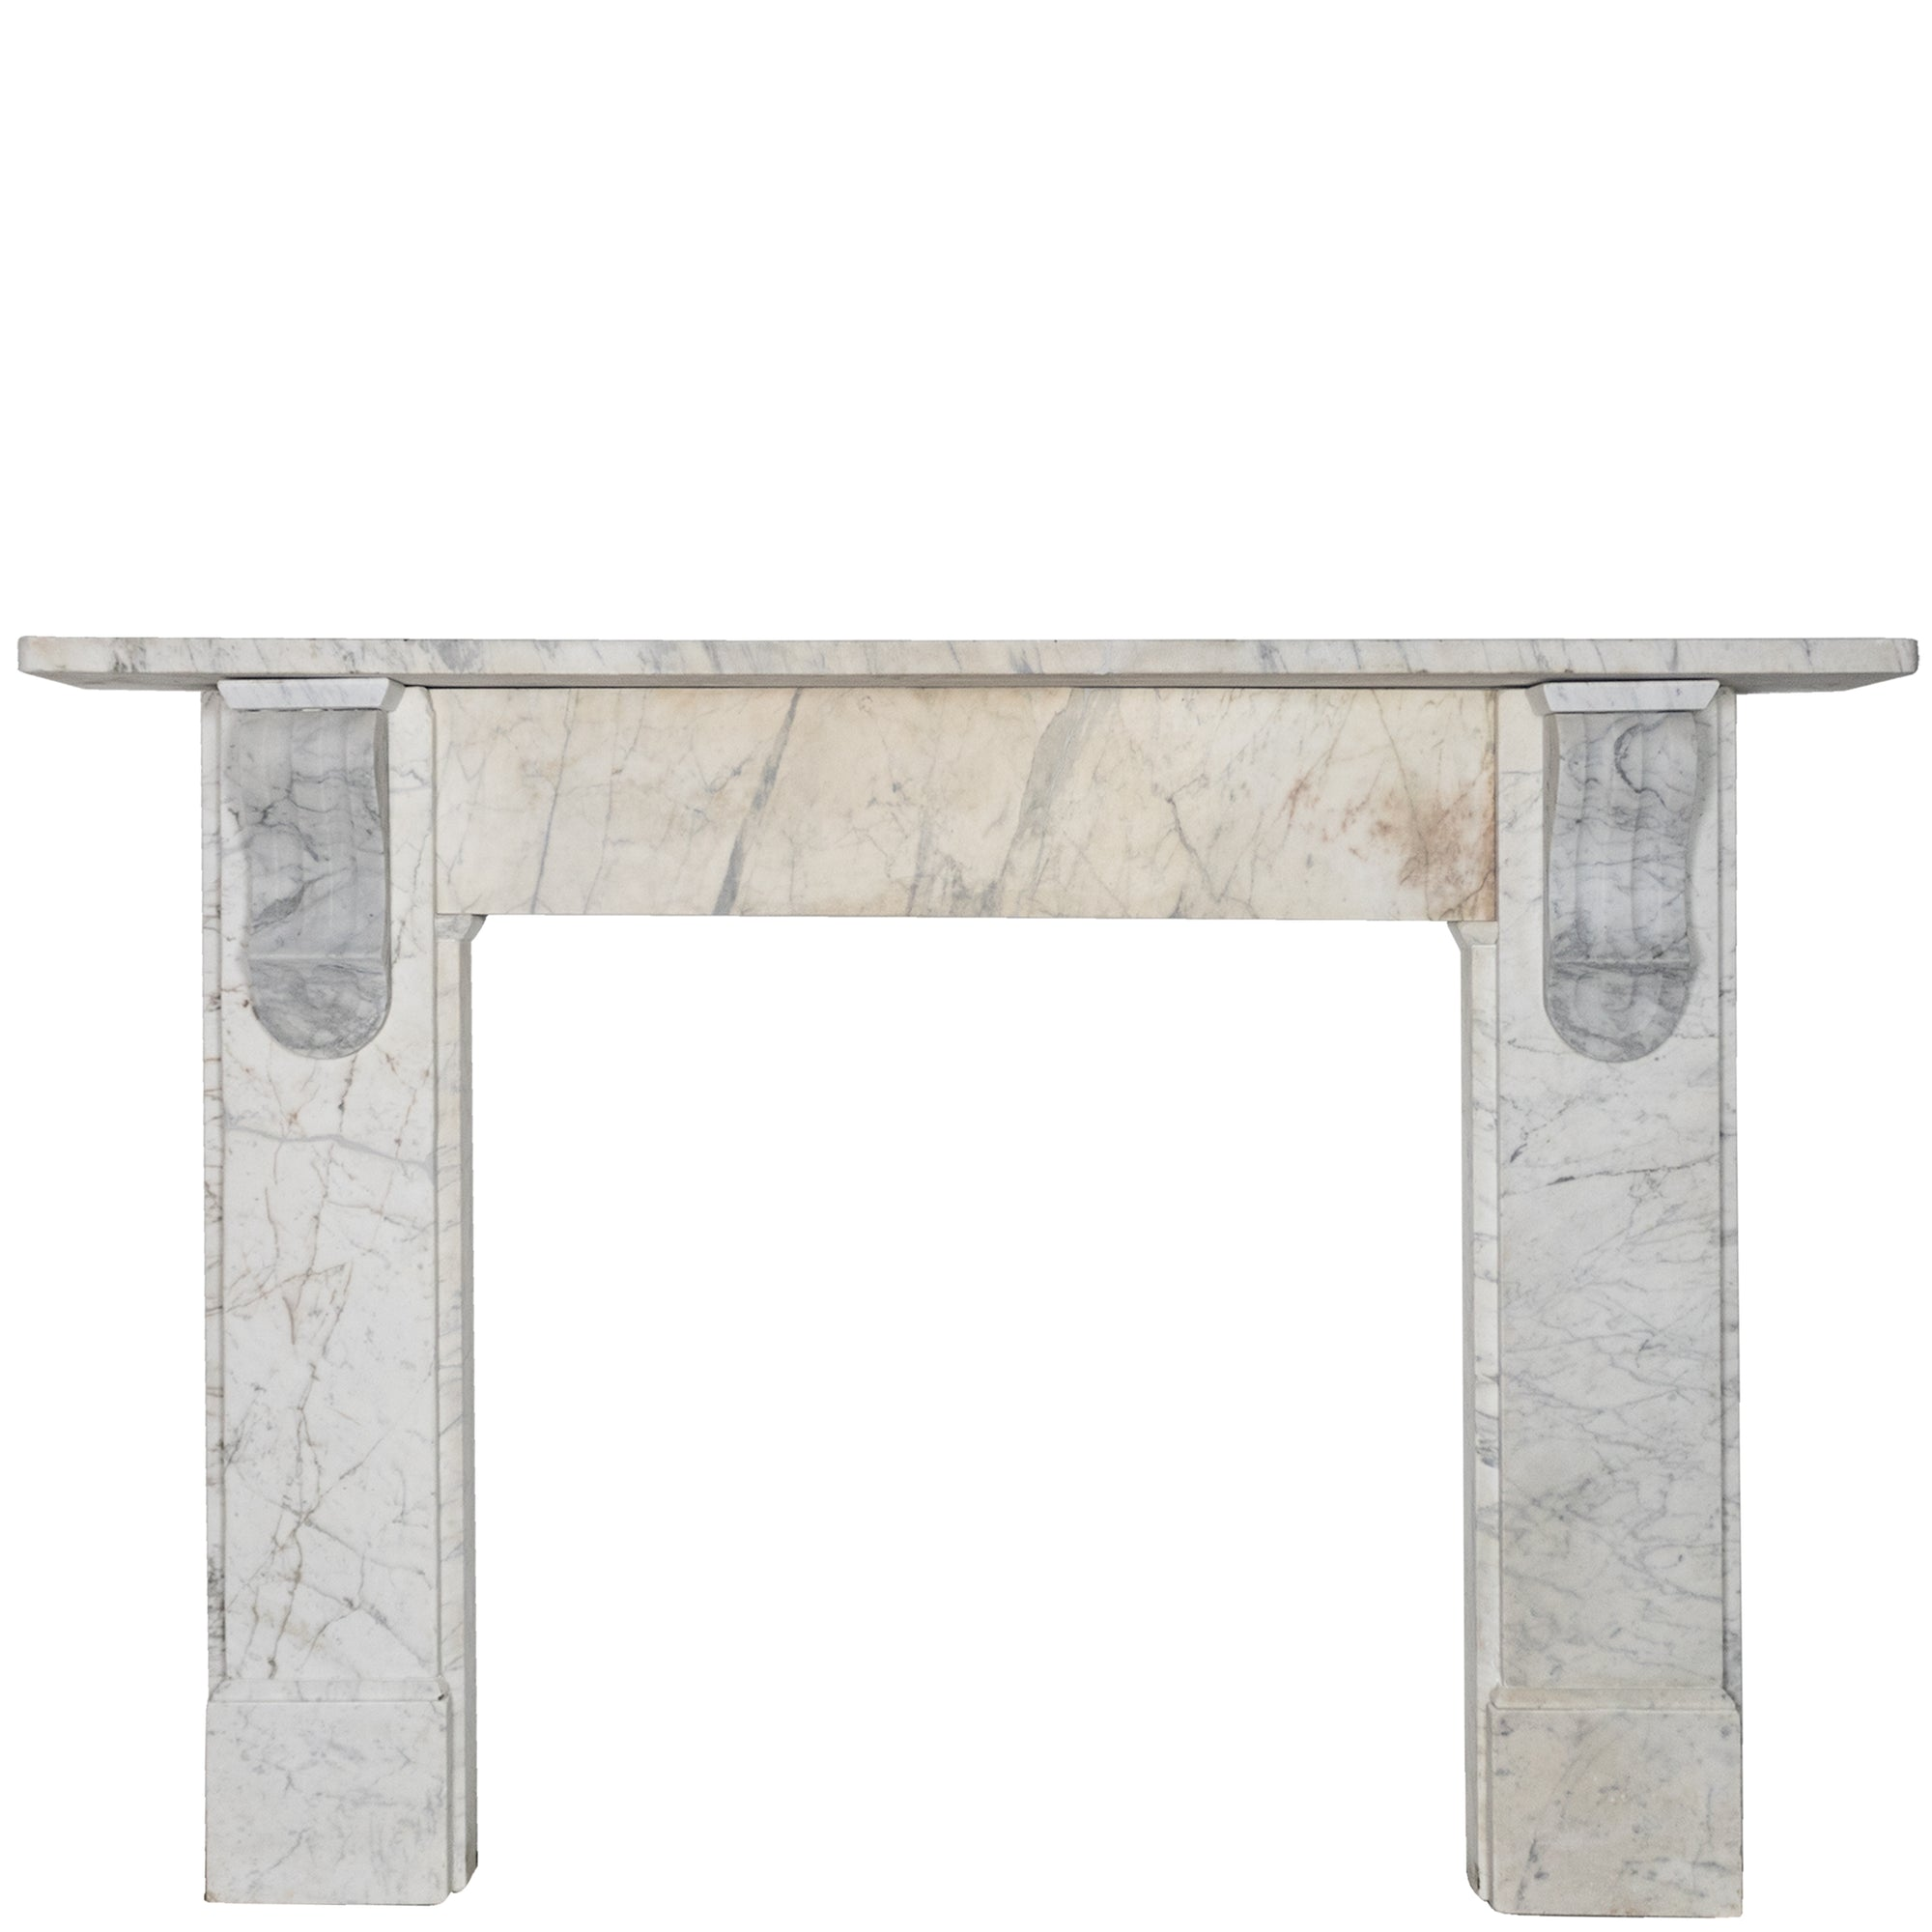 Antique Victorian Marble Corbel Fireplace Surround | The Architectural Forum